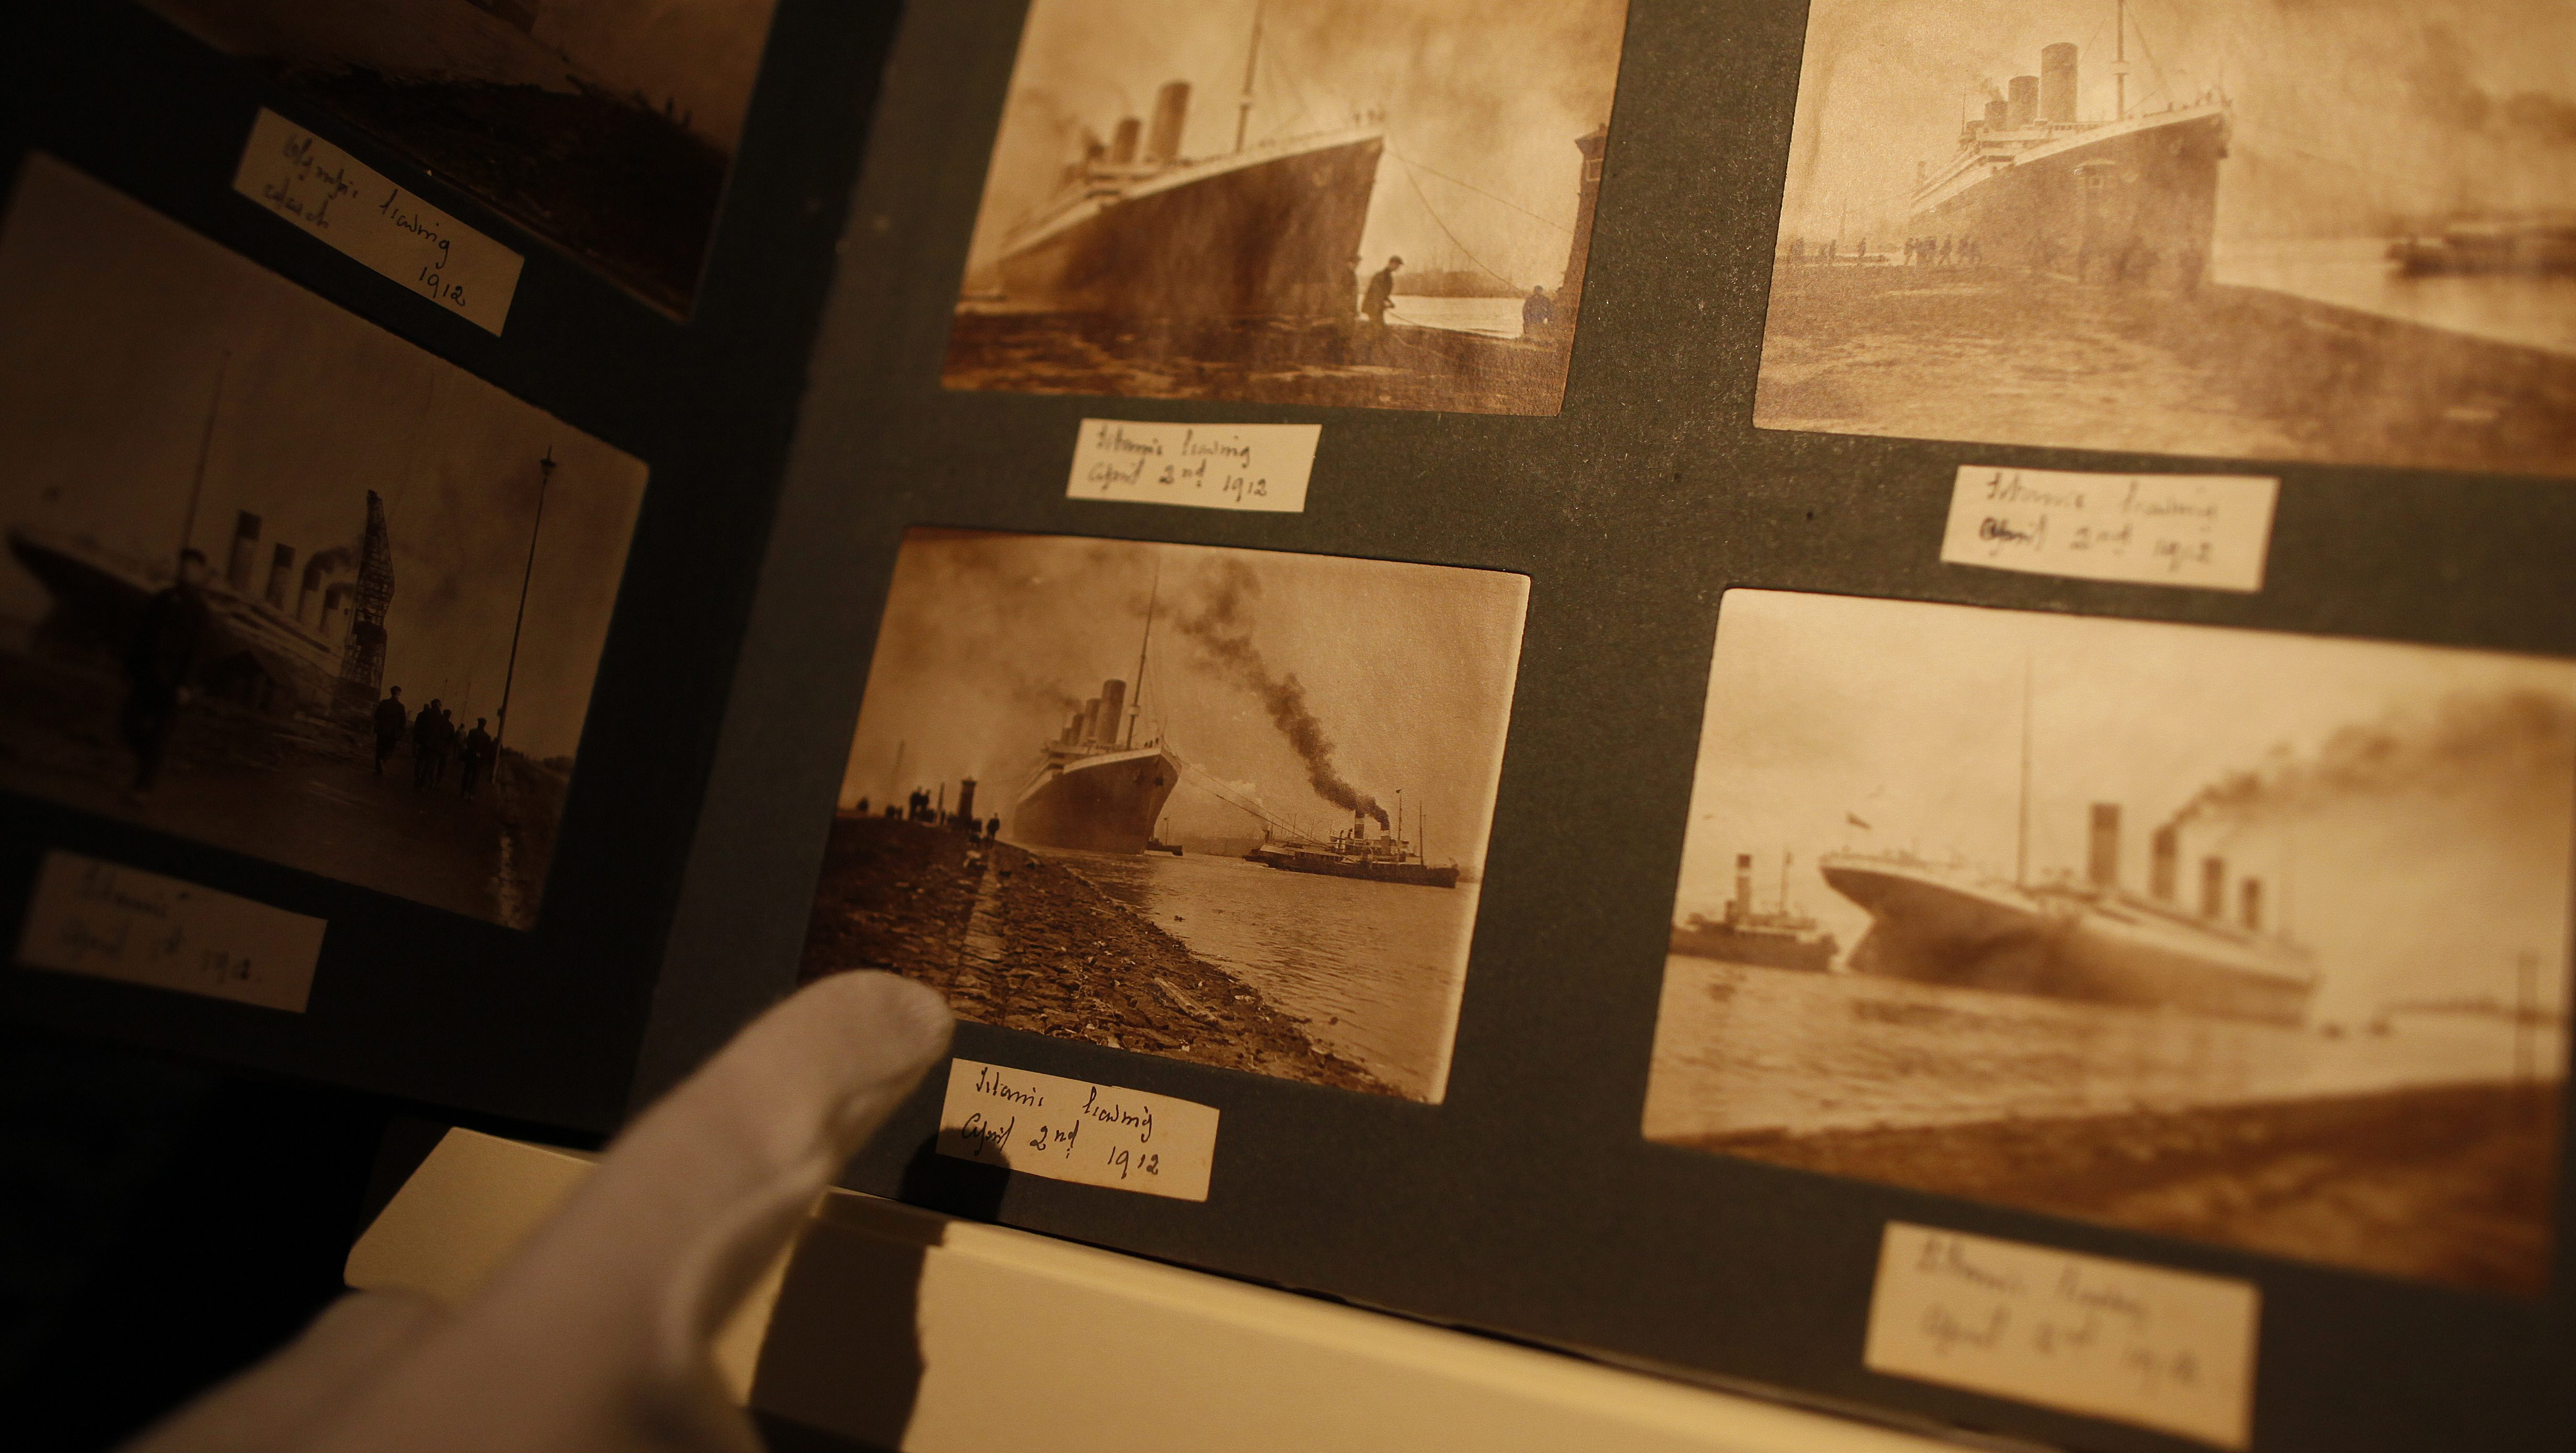 A member of staff at the Transport museum in Belfast, Northern Ireland, points to photographs of the Titanic displayed in a family album, Tuesday, Oct. 14, 2014. The album featuring never seen before pictures was displayed Tuesday which showed the launch and departure from Belfast in 1912. The album containing 116 prints belonged to John W Kempster who was a director and the master of ceremonies at Harland & Wolff, the Belfast shipyard that built the ship. (AP Photo/Peter Morrison)